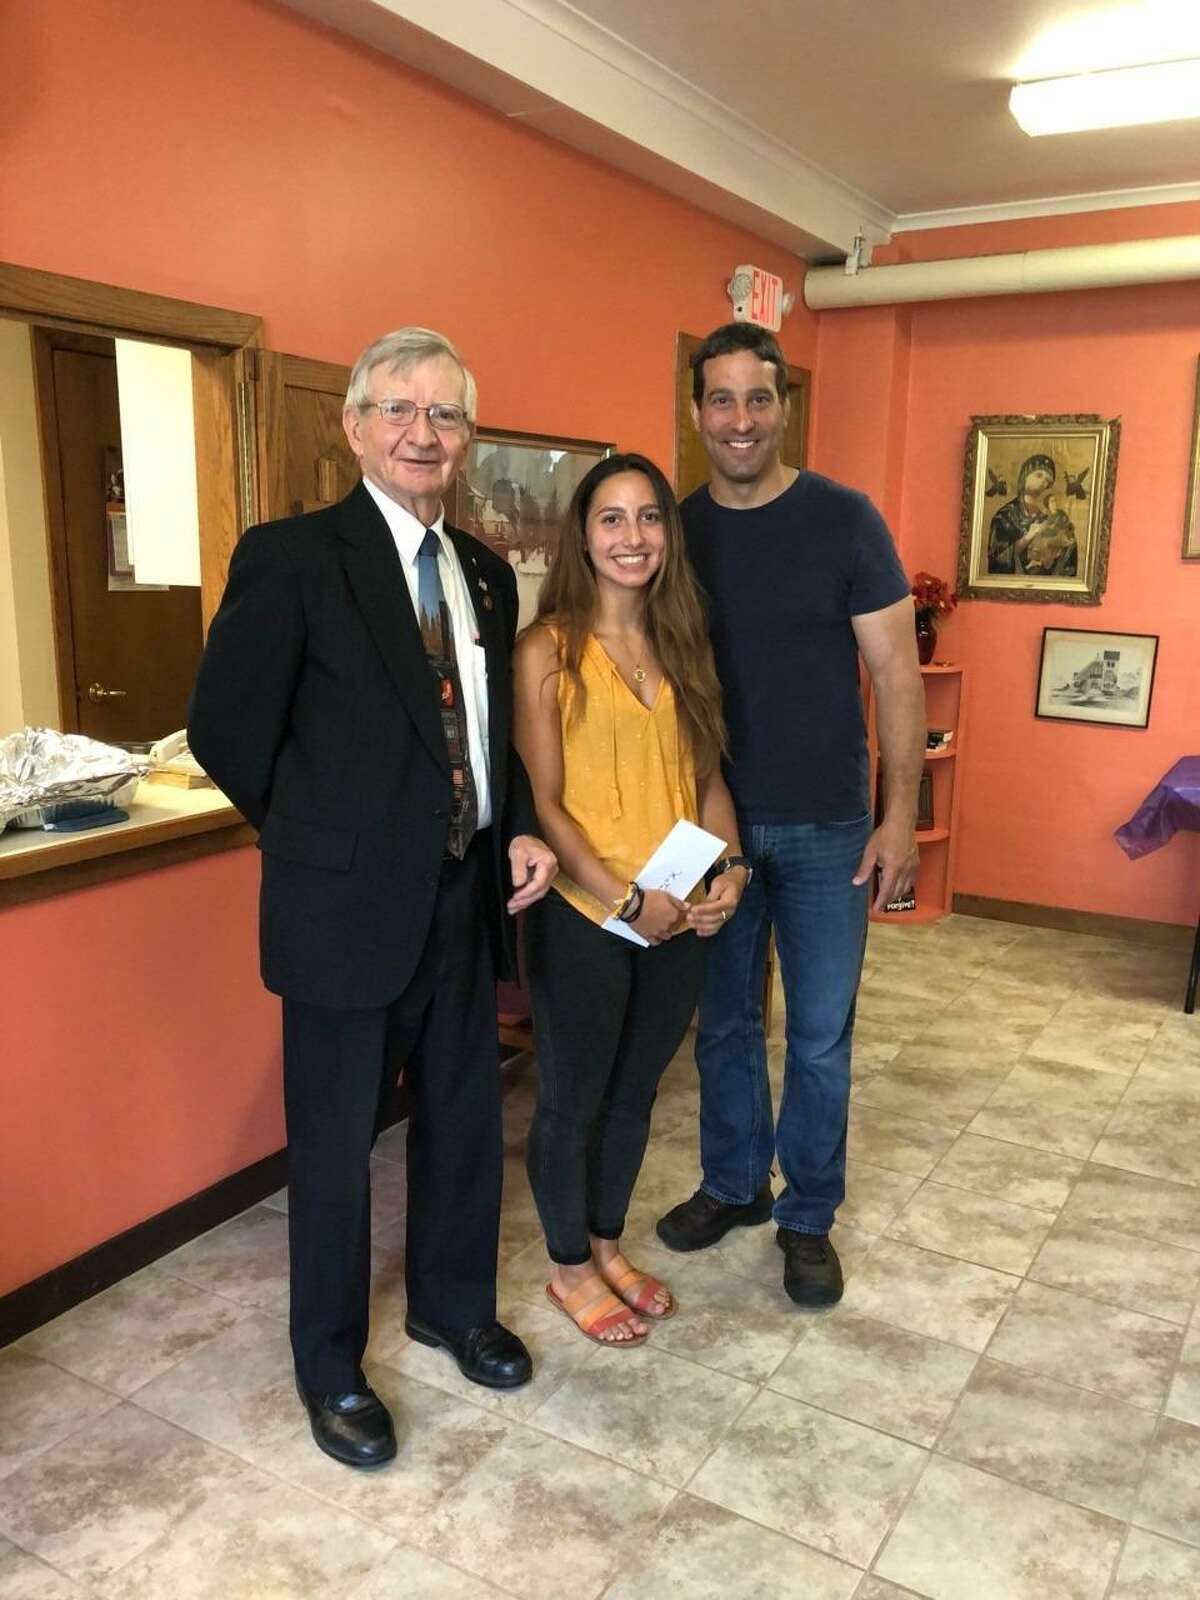 From left, David DeWitt, Katalina Mancinone, and Joseph Mancinone. Recipient Eilish Crossley was not available for the photo and Crossley's father, Douglas Crossley, accepted the award for her.